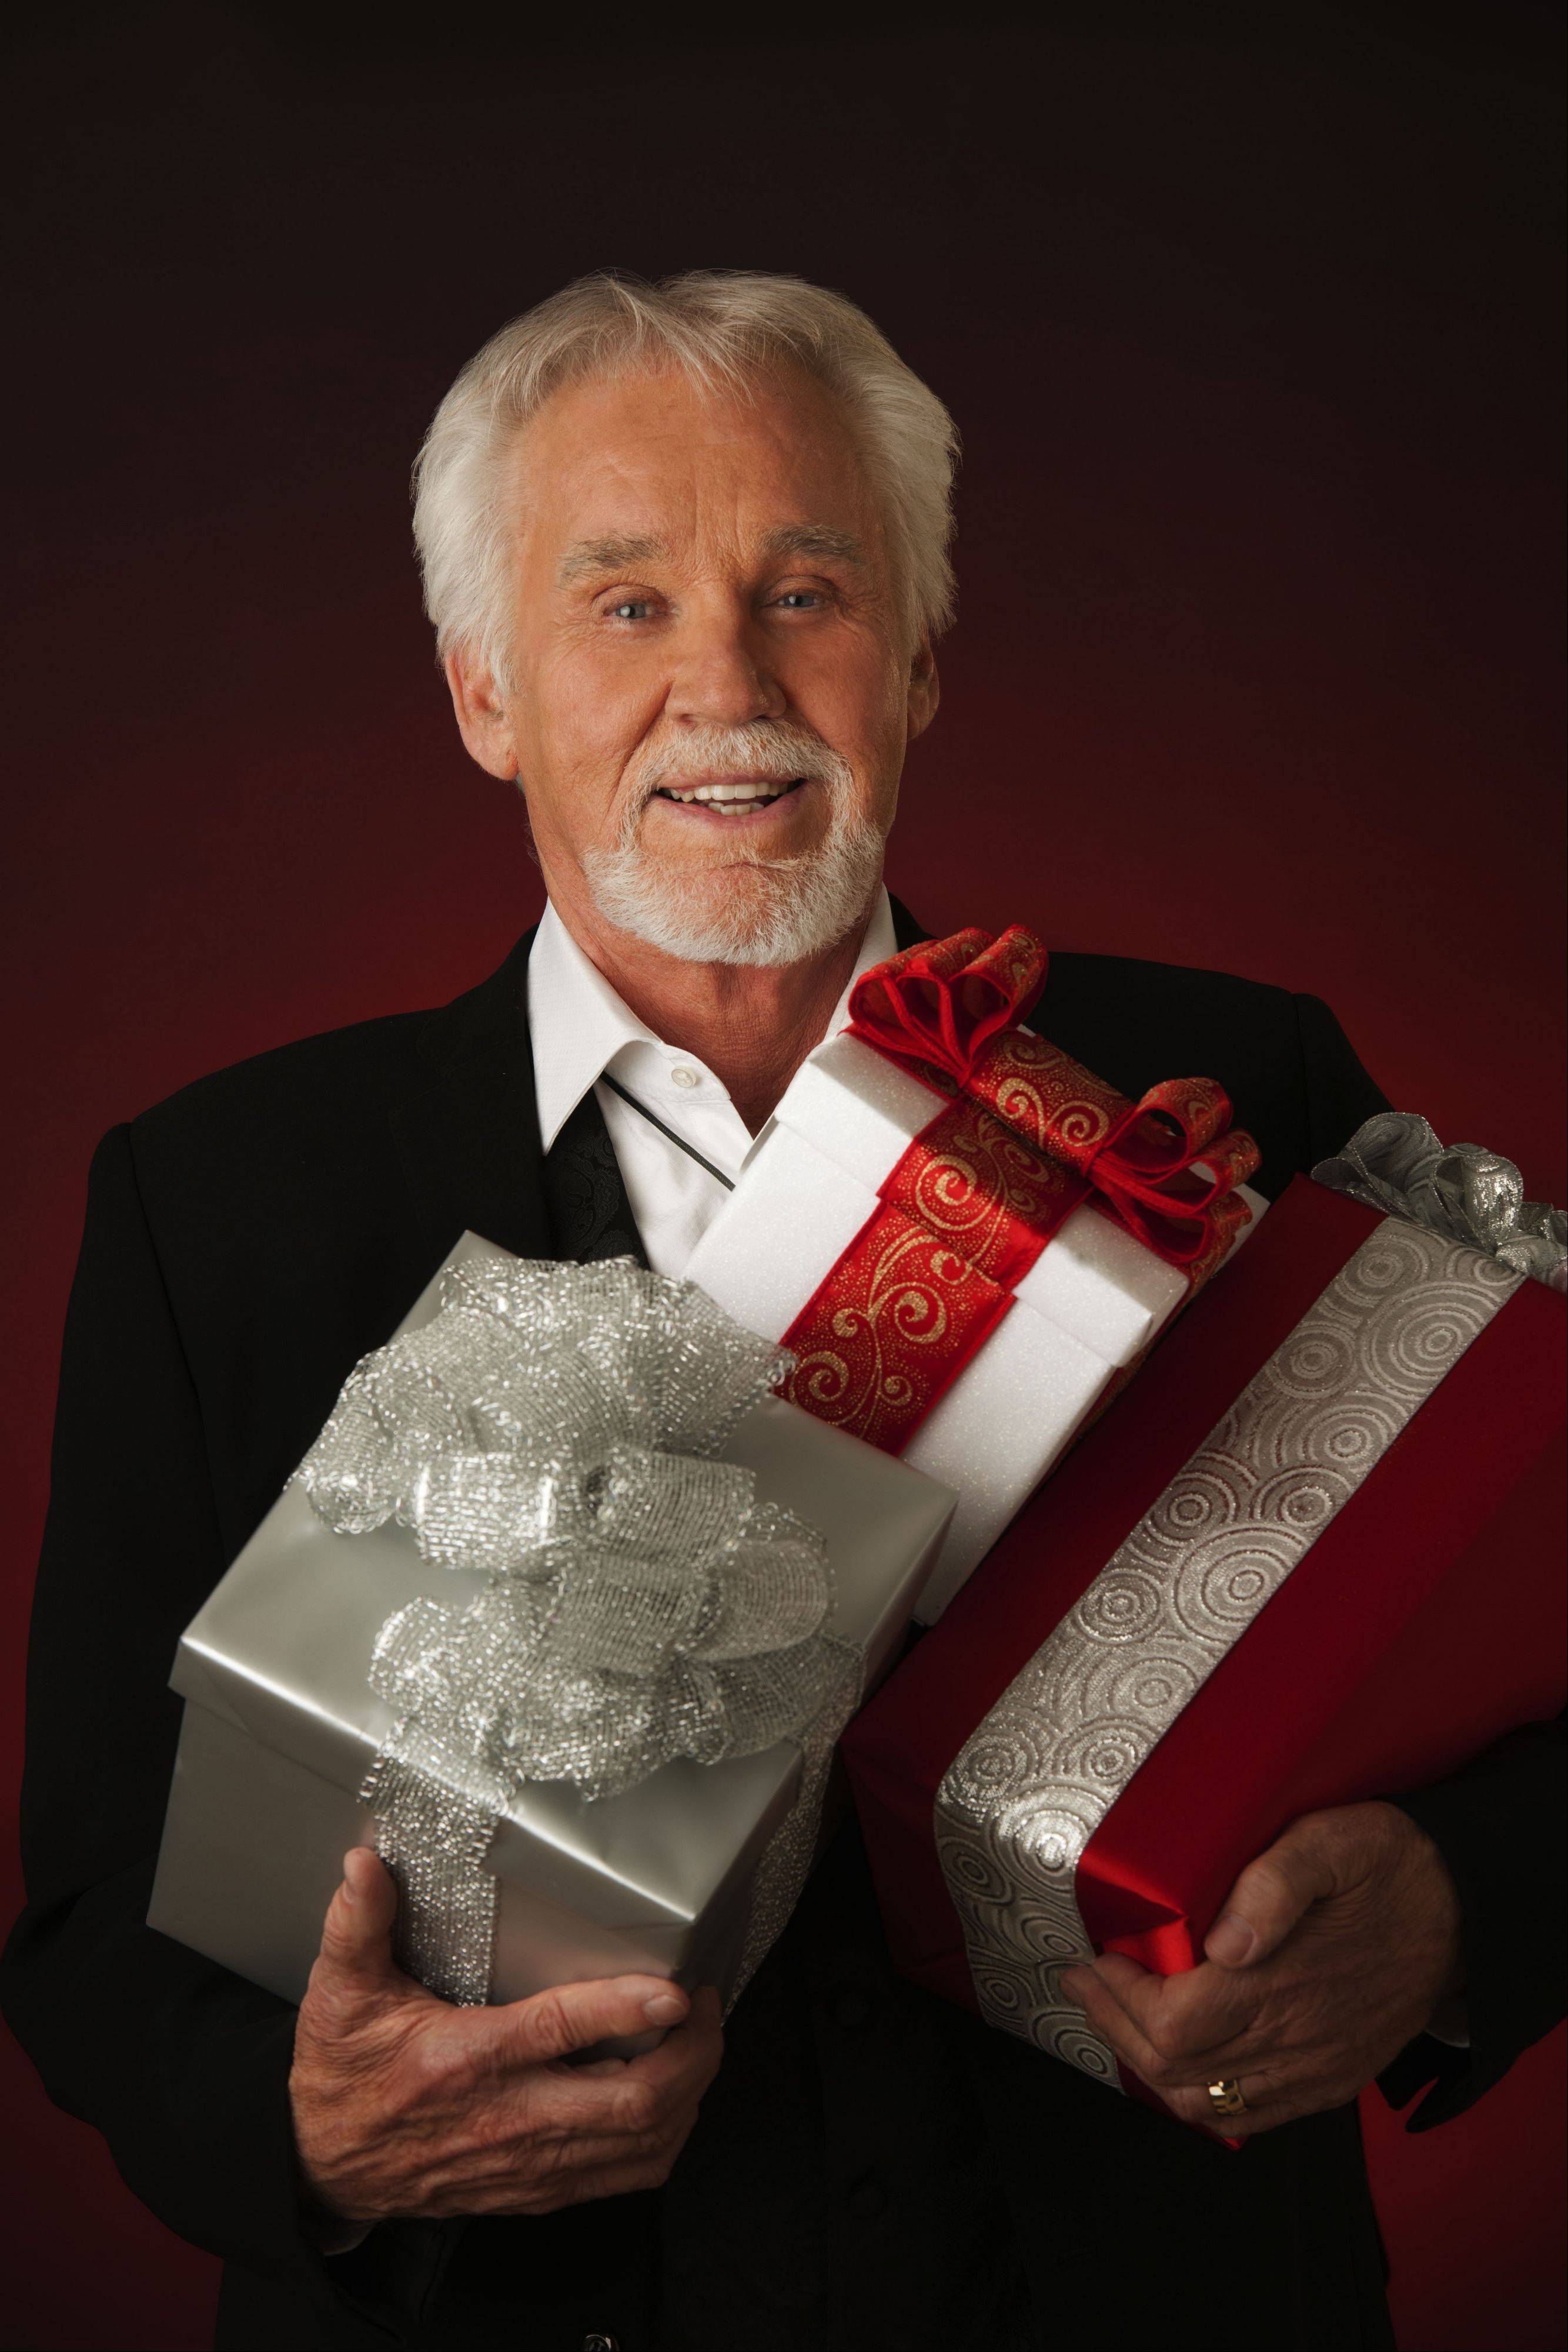 Kenny Rogers brings his 32nd annual �Christmas & Hits Through the Years� tour with special guest Linda Smith to North Central College�s Pfeiffer Hall in Naperville on Saturday, Dec. 21.